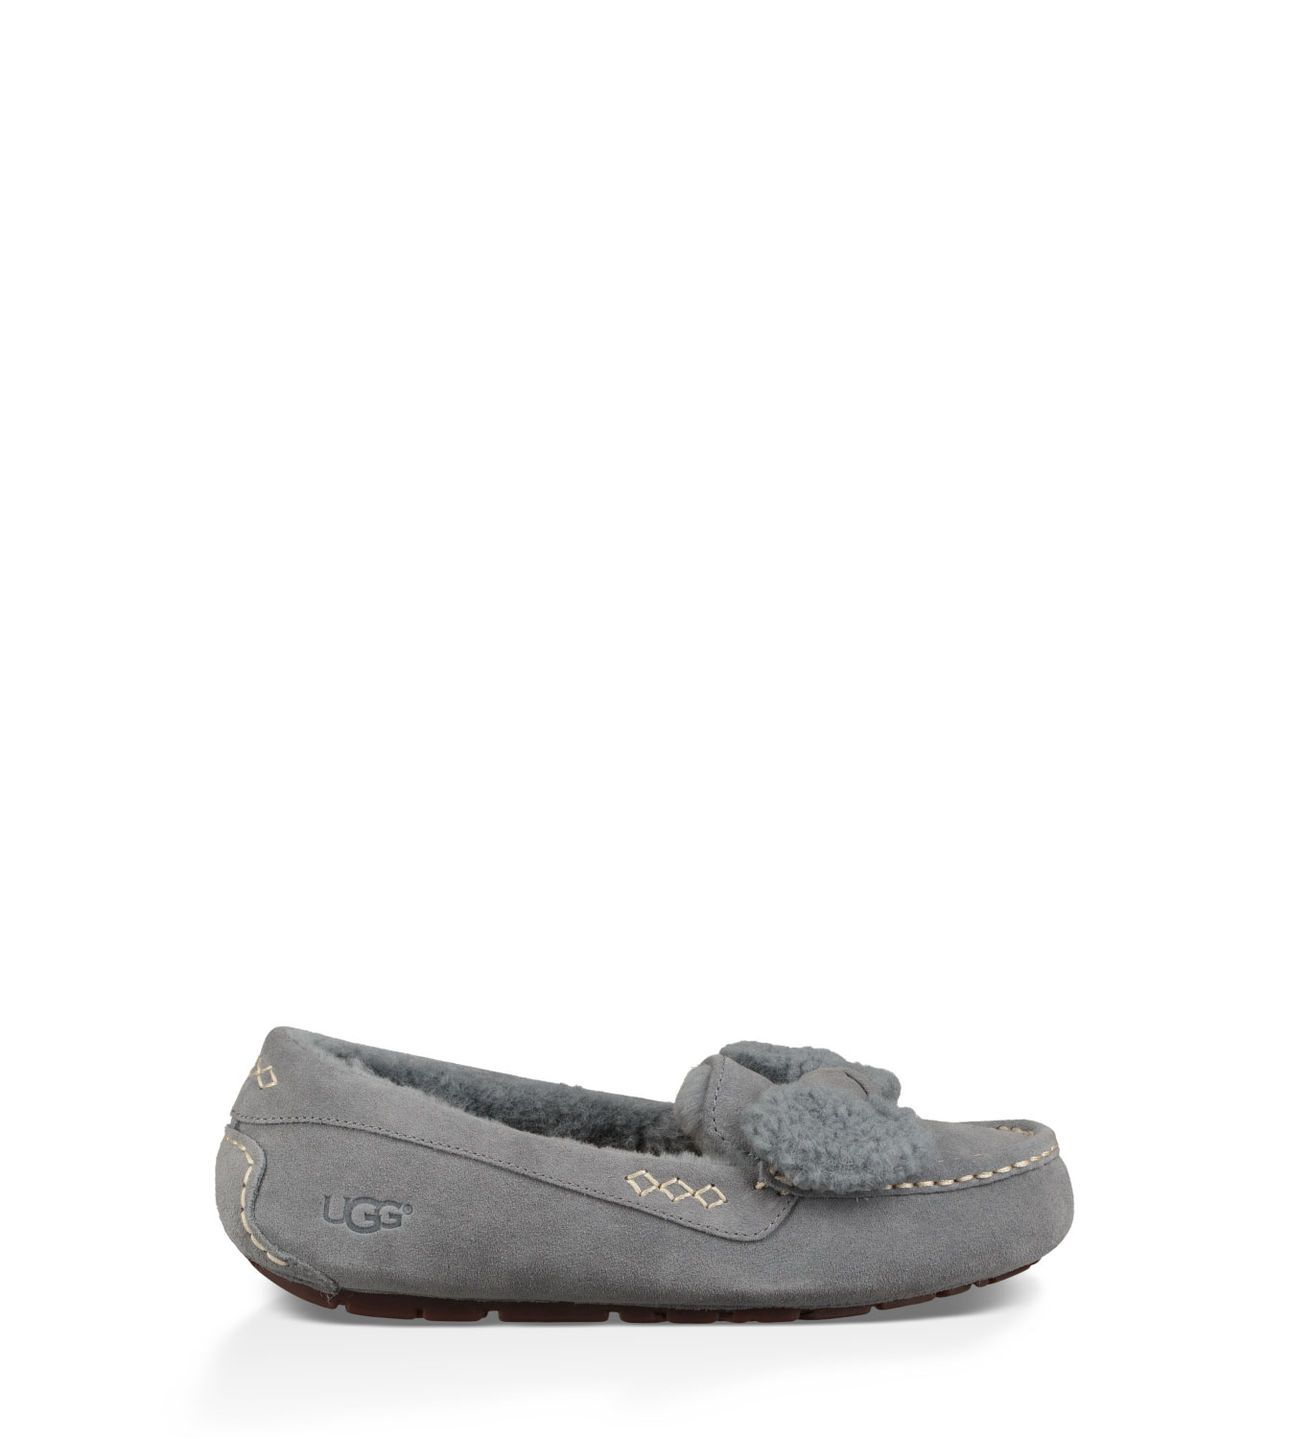 56e83ba7a1a Original UGG® Ansley Fur Bow Moccasins for Women on the official UGG®  website.